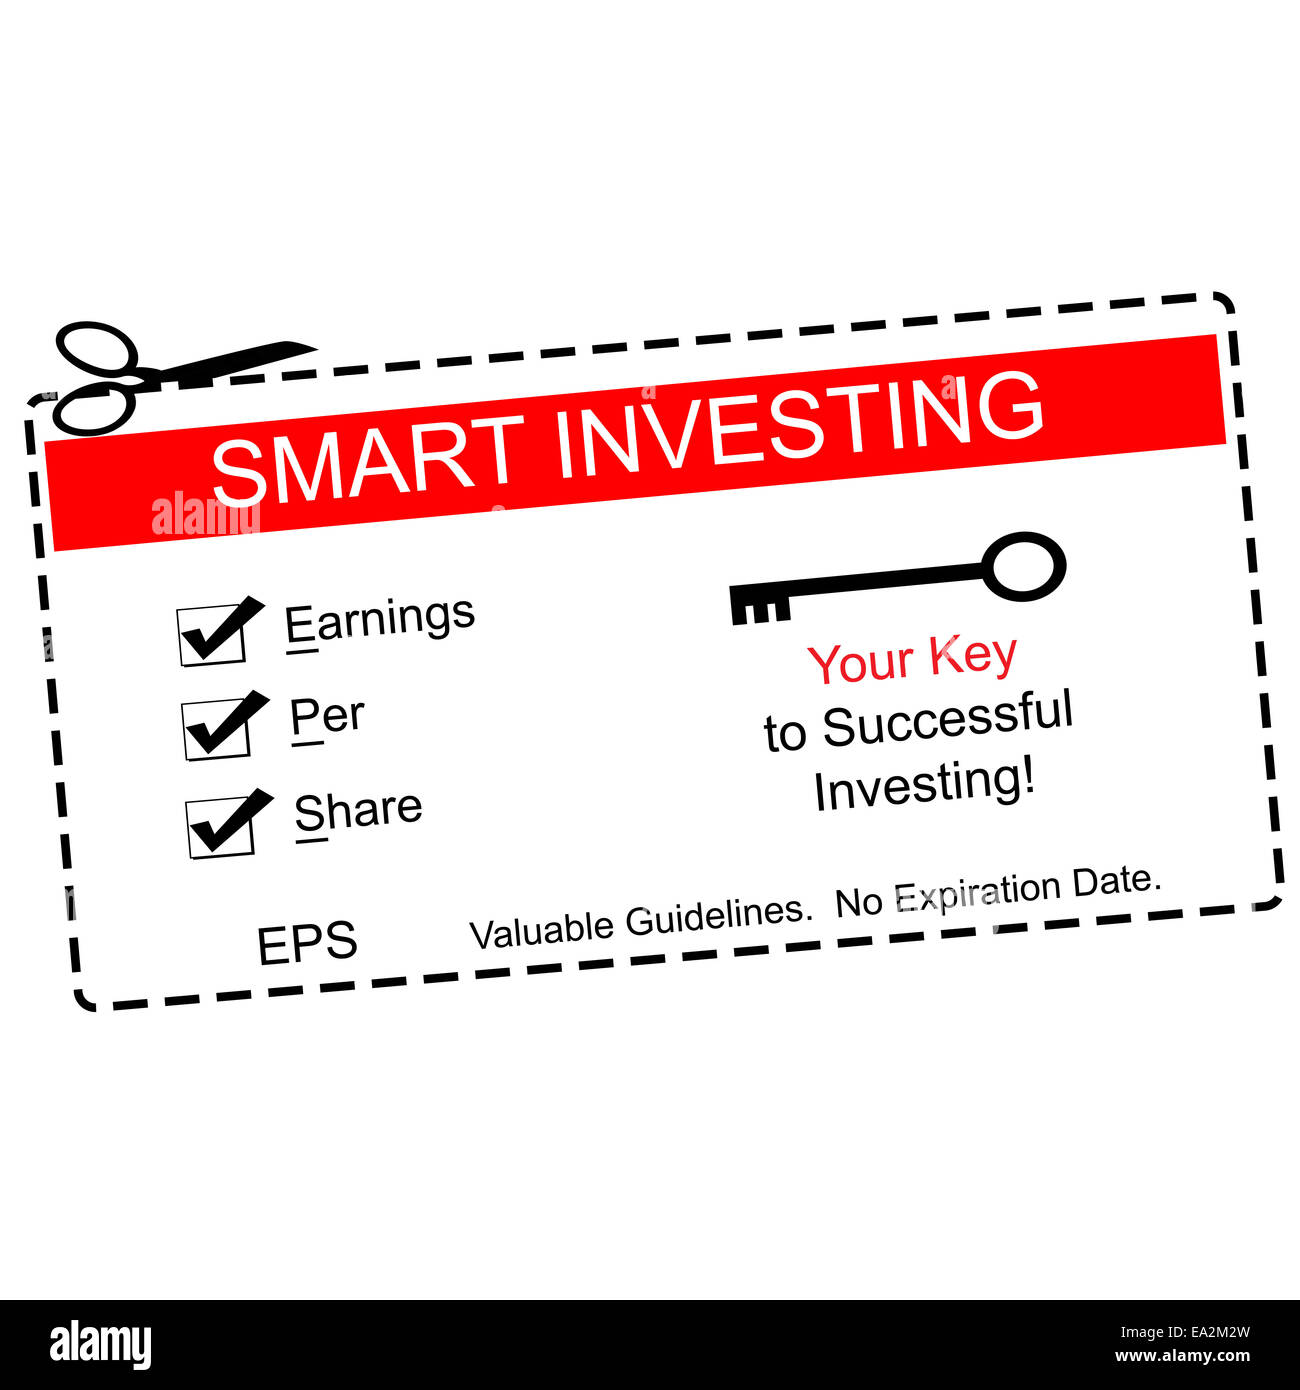 eps earnings per share smart investing red coupon making a great